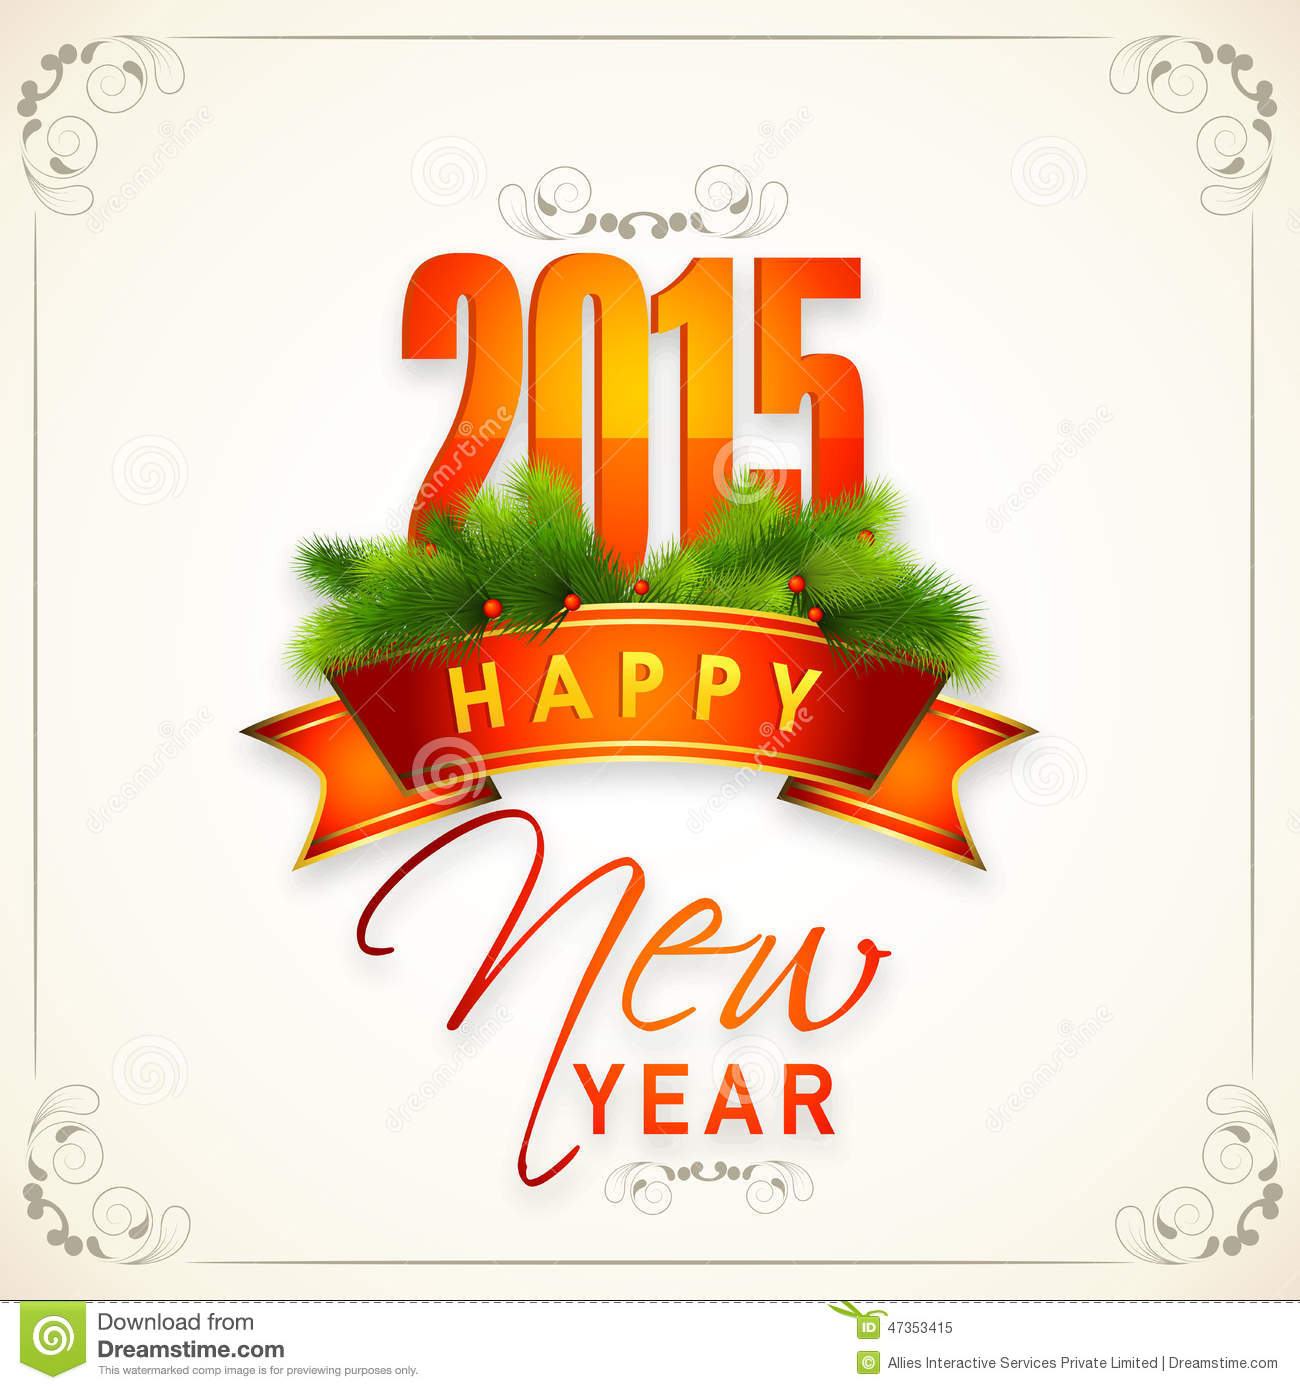 Happy New Year 2015 Celebrations Greeting Card Design ...